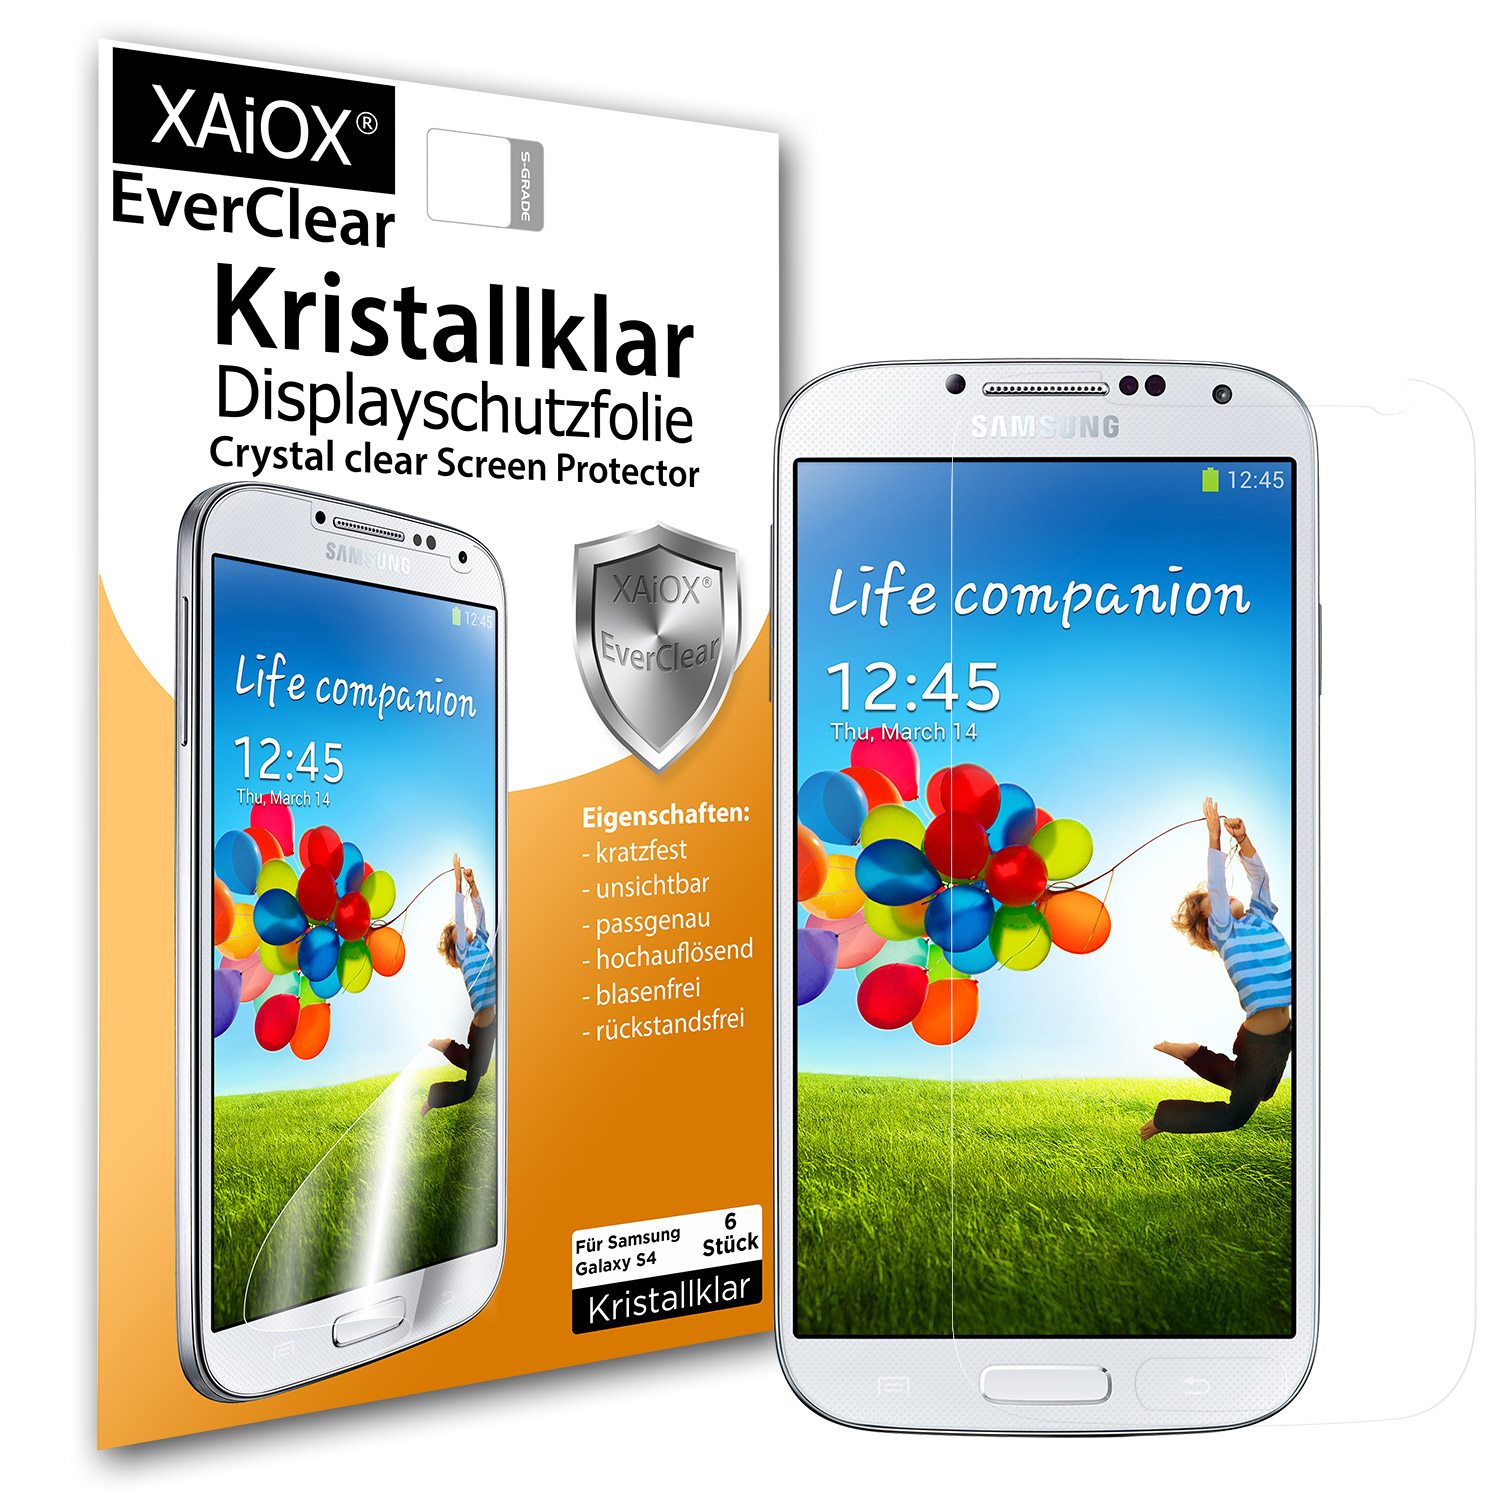 1 x XAiOX Everclear Displayschutzfolie für Galaxy S4 i9500 (6er Set)